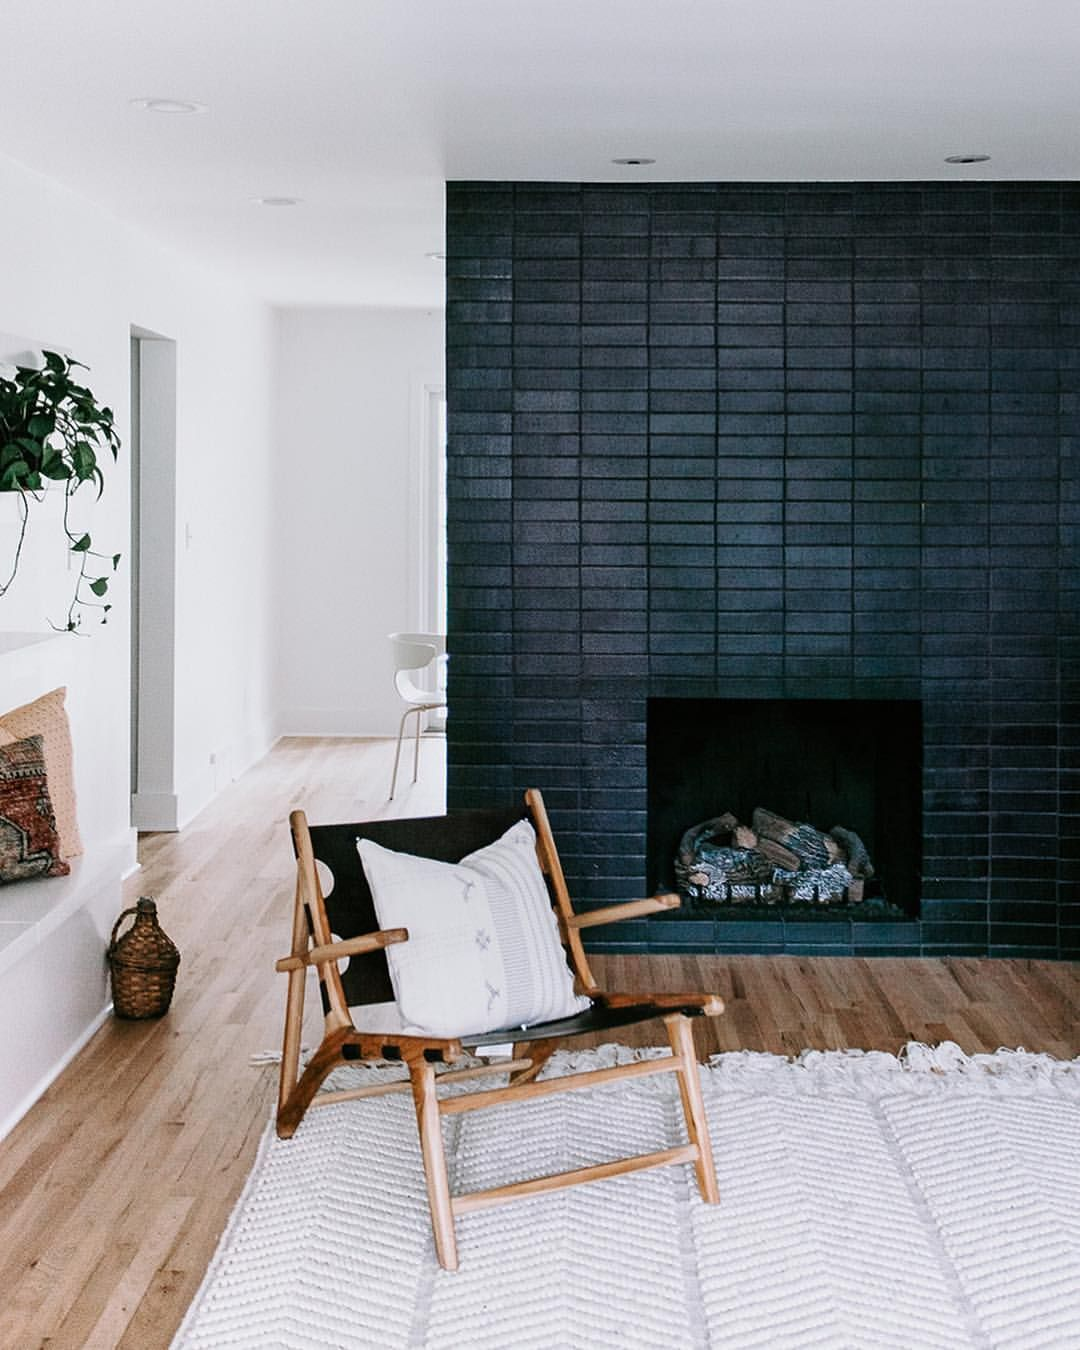 A Glazed Thin Brick Fireplace In Black Hills Became The Focal